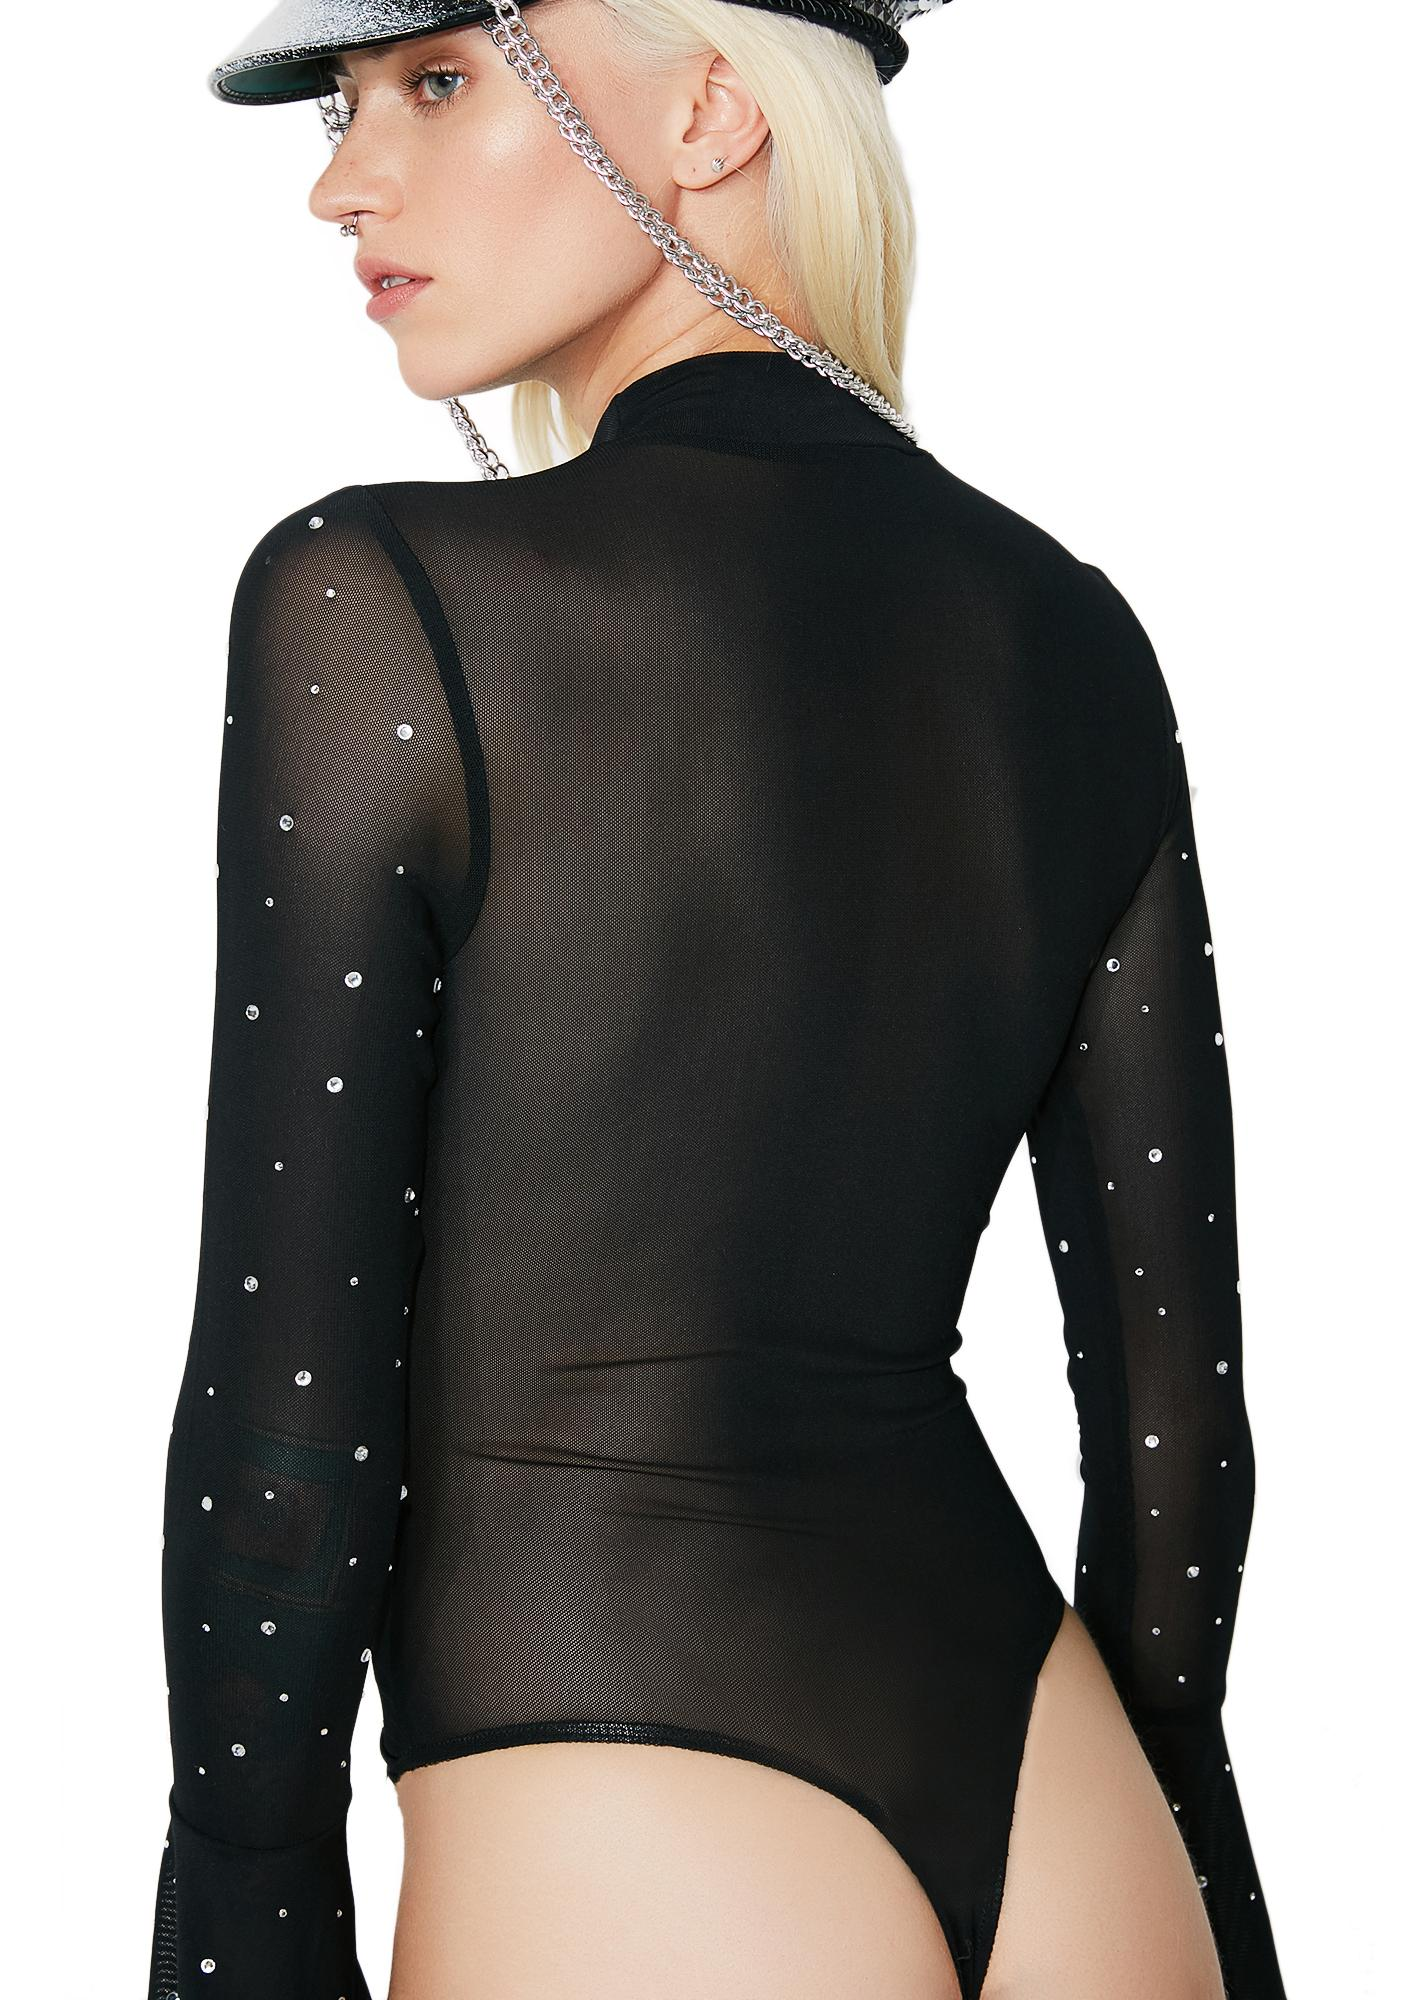 Fire And Ice Sheer Bodysuit